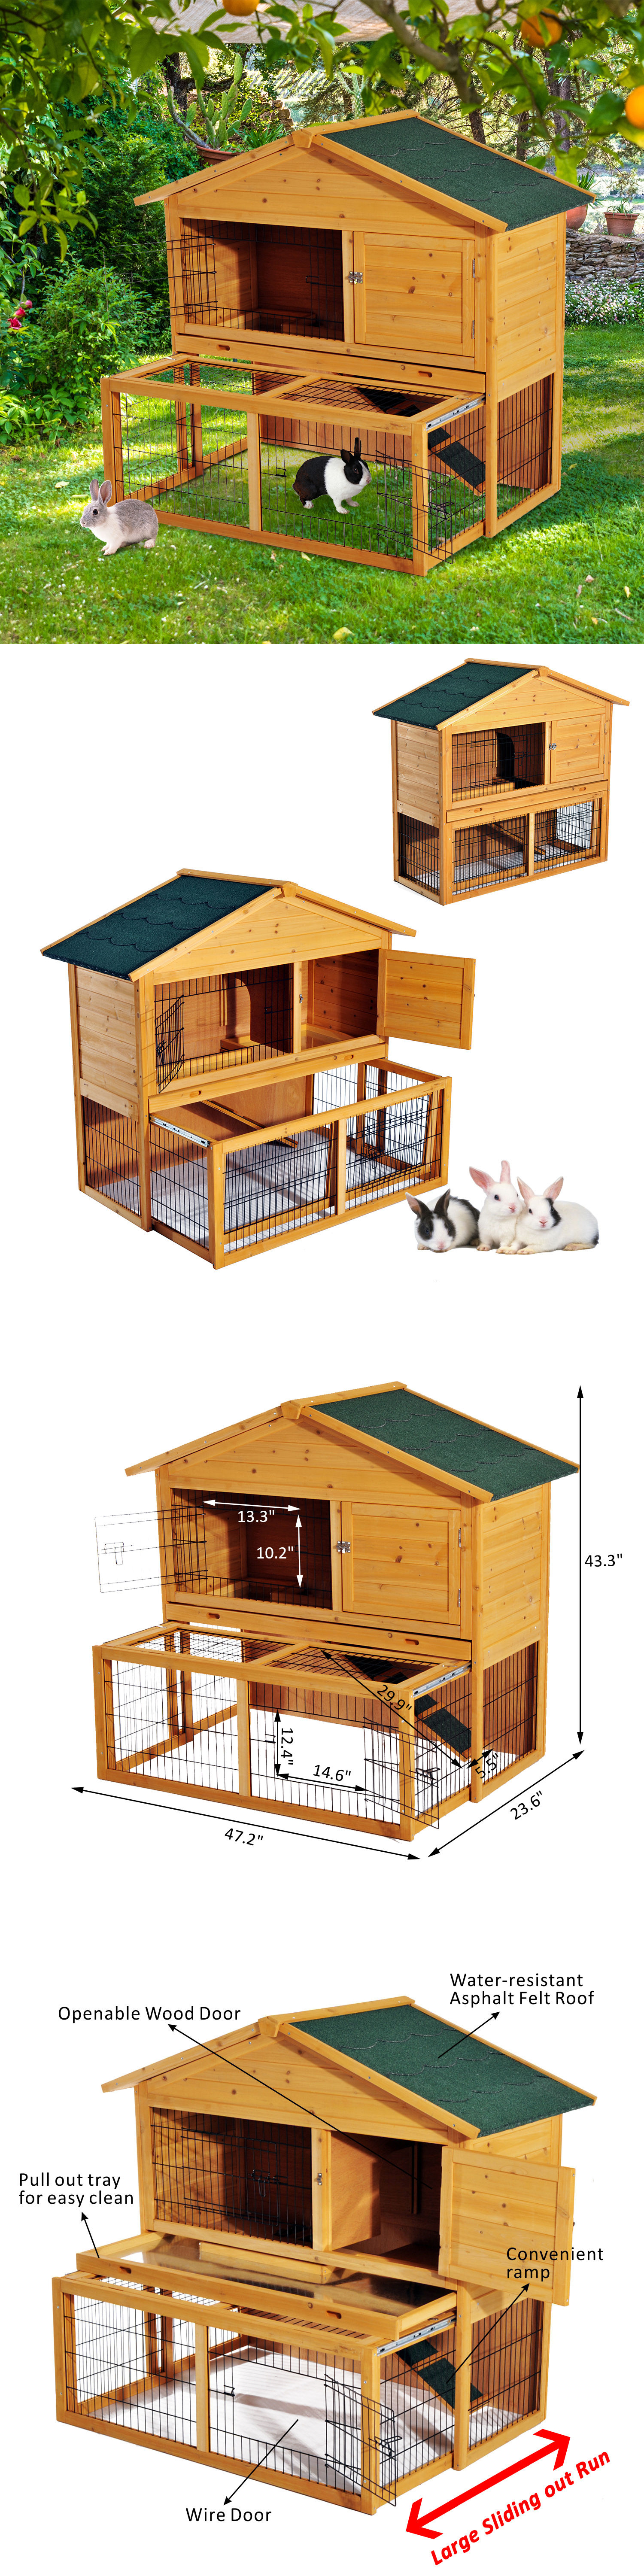 supplies wood poultry pets rabbit savoy imperial solid hen pet pin deluxe mini house coop chicken hutch large